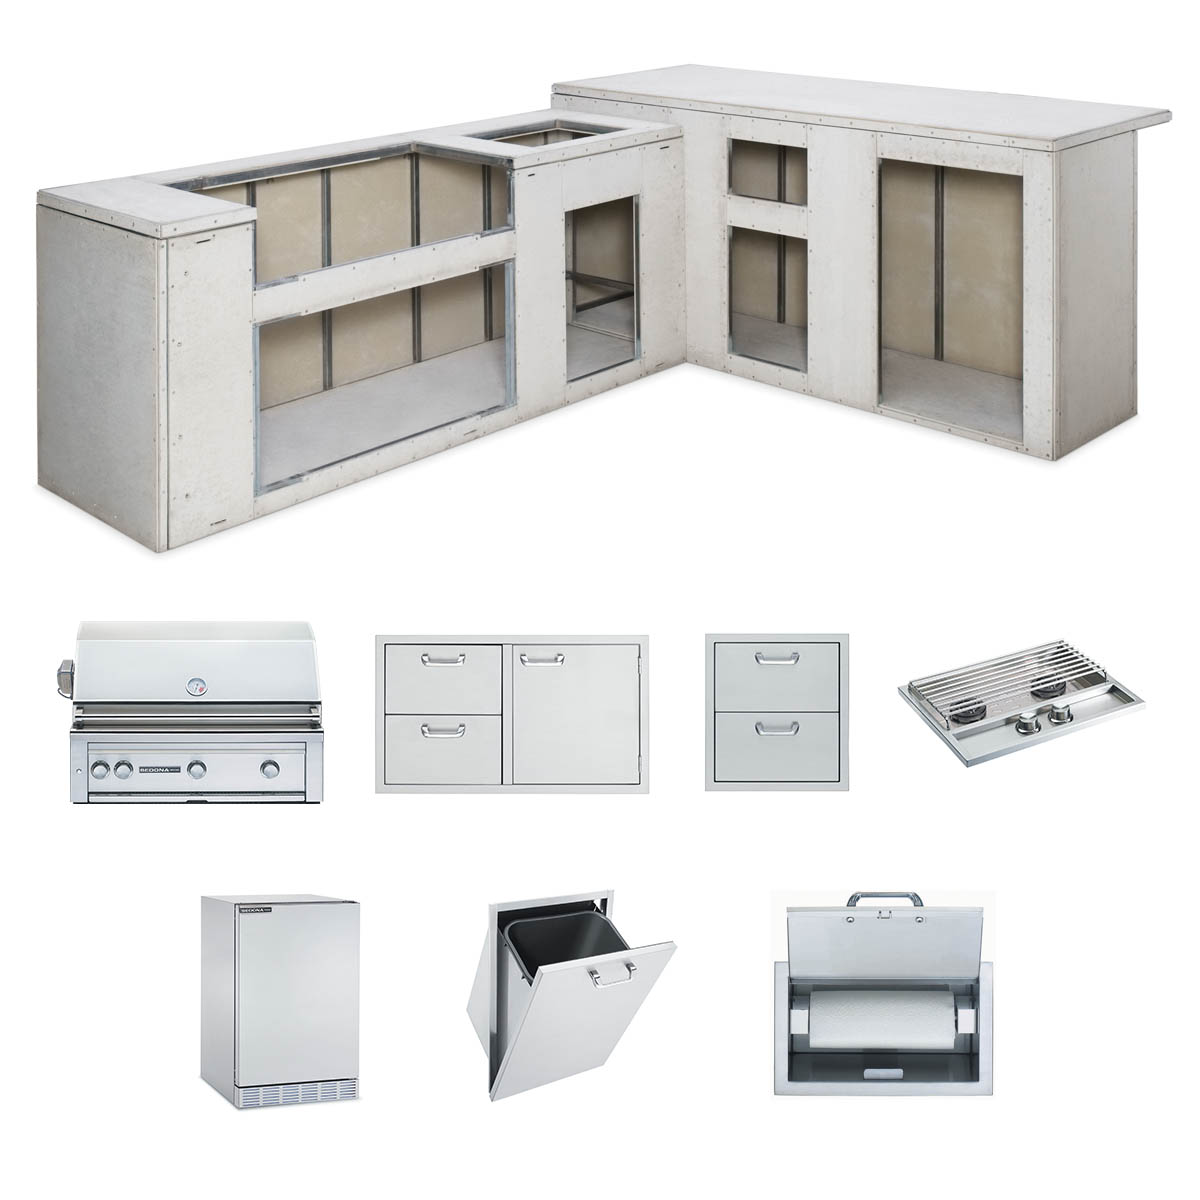 """Lynx RTF Island Package includes: L600 Grill, 36"""" Access Doors, Double Side Burner, Refrigerator, Paper Towel Dispenser, Trash Center, Double Drawers"""